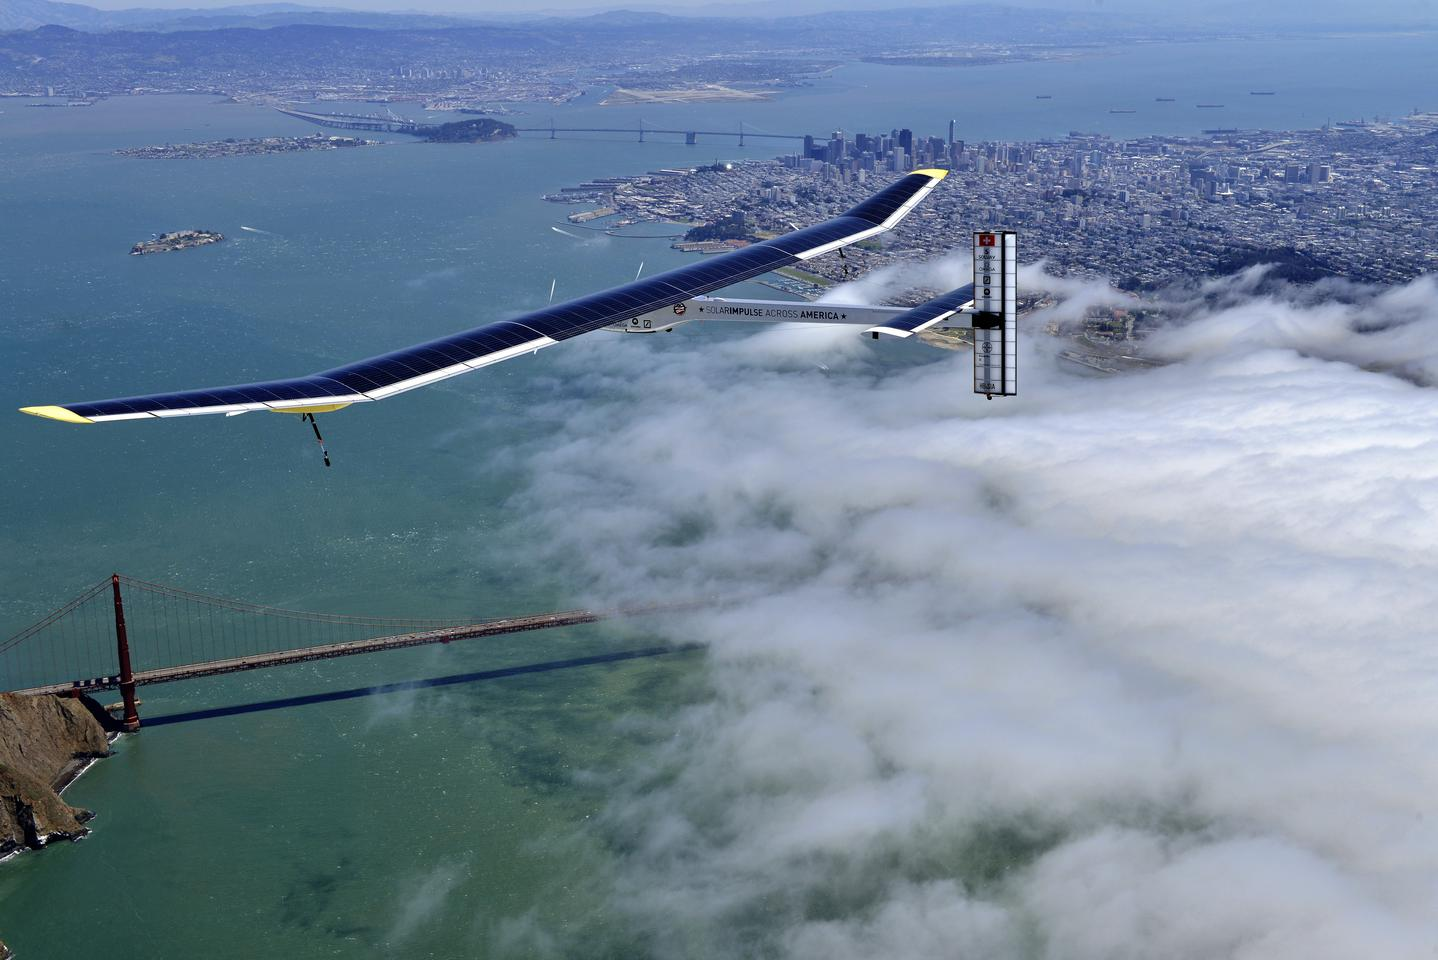 The Solar Impulse airplane, on an earlier test flight over San Francisco